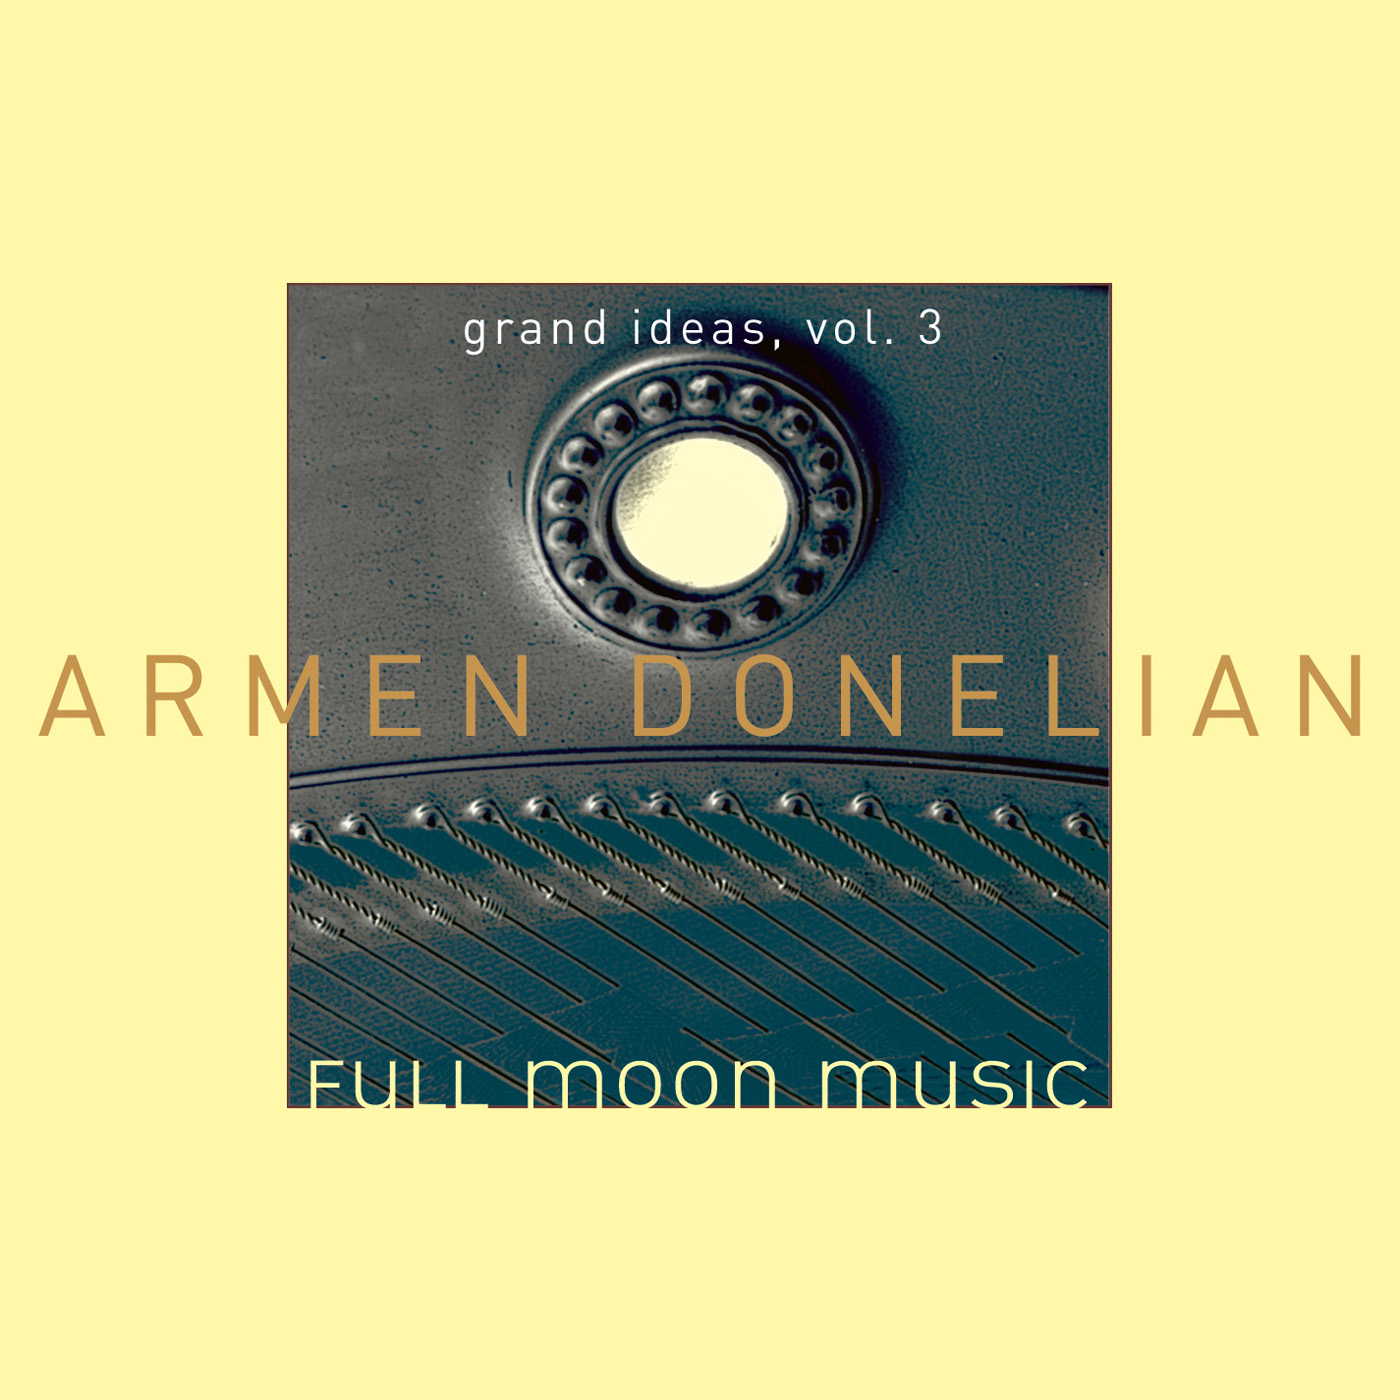 Full Moon Music by Armen Donelian cover